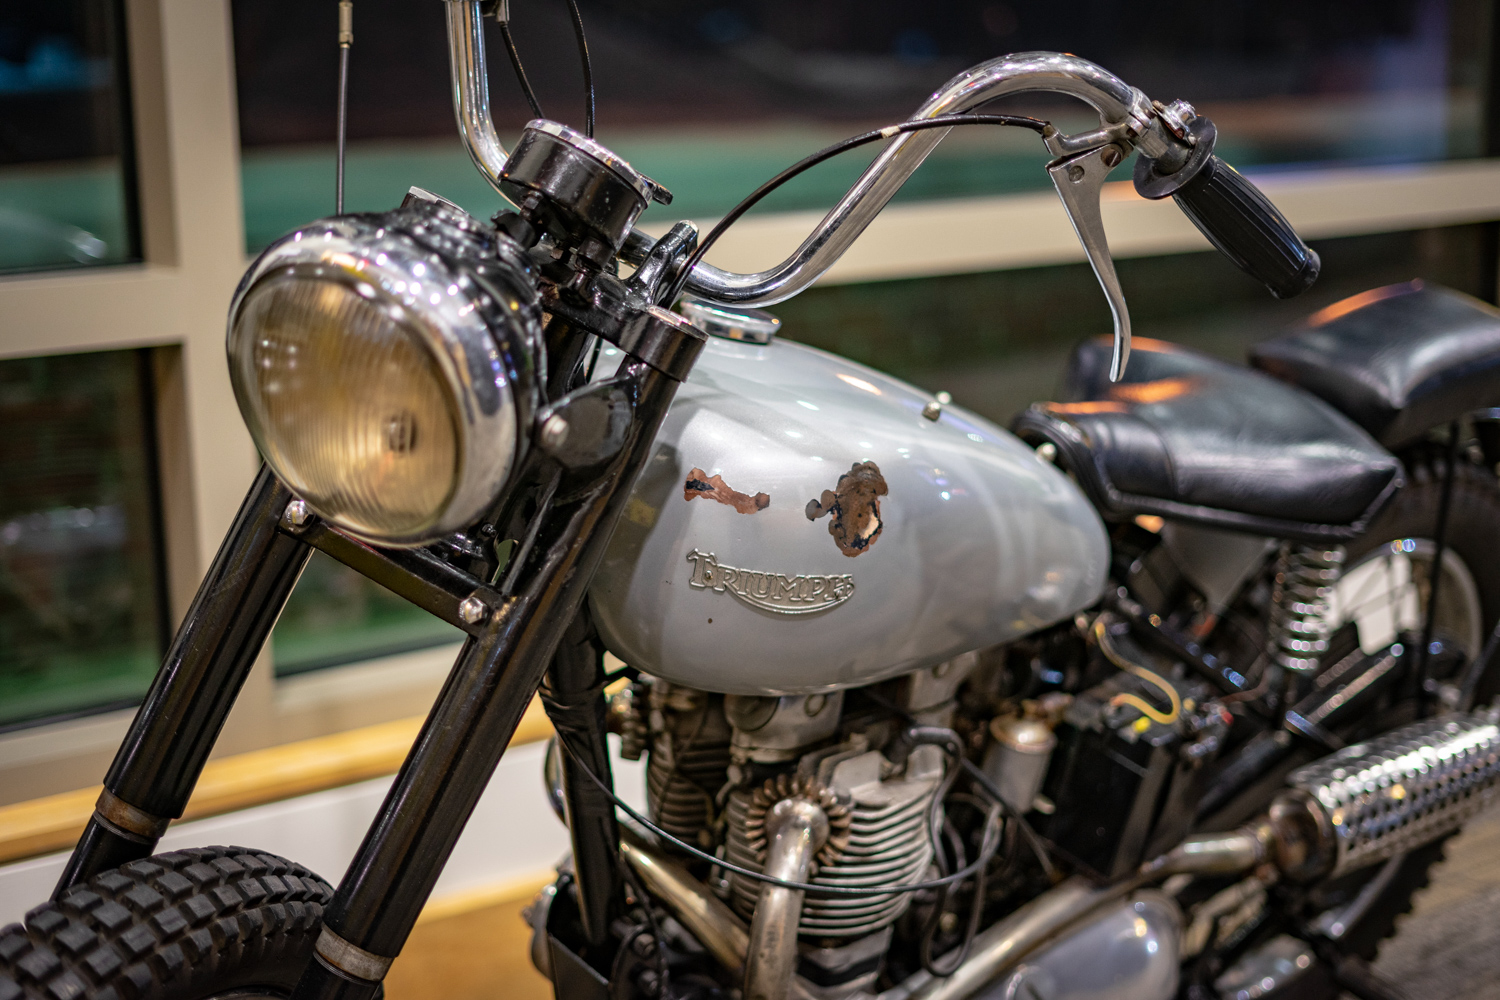 The gas tank on the Happy Days Triumph has some damage, likely from one of Henry Winkler's crash landings. The Fonz may have looked like a skilled rider, but Winkler wasn't.